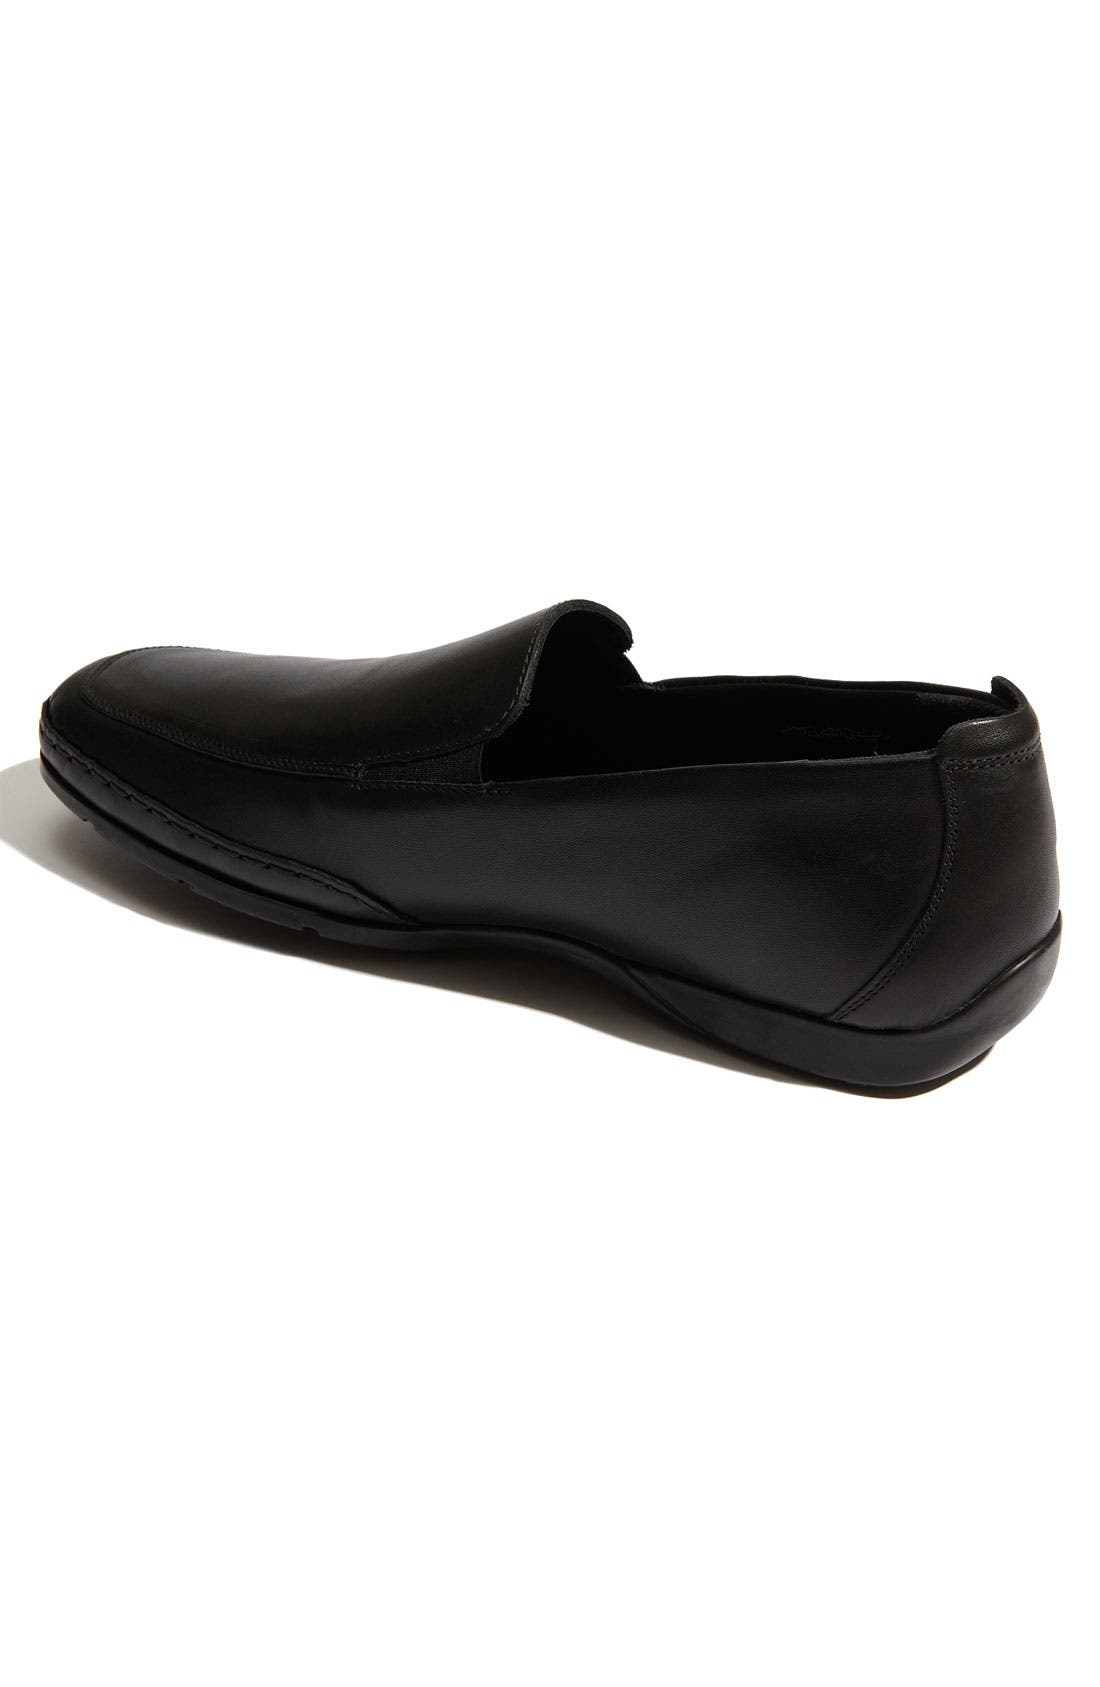 'Edlef' Slip-On,                             Alternate thumbnail 7, color,                             BLACK SMOOTH LEATHER